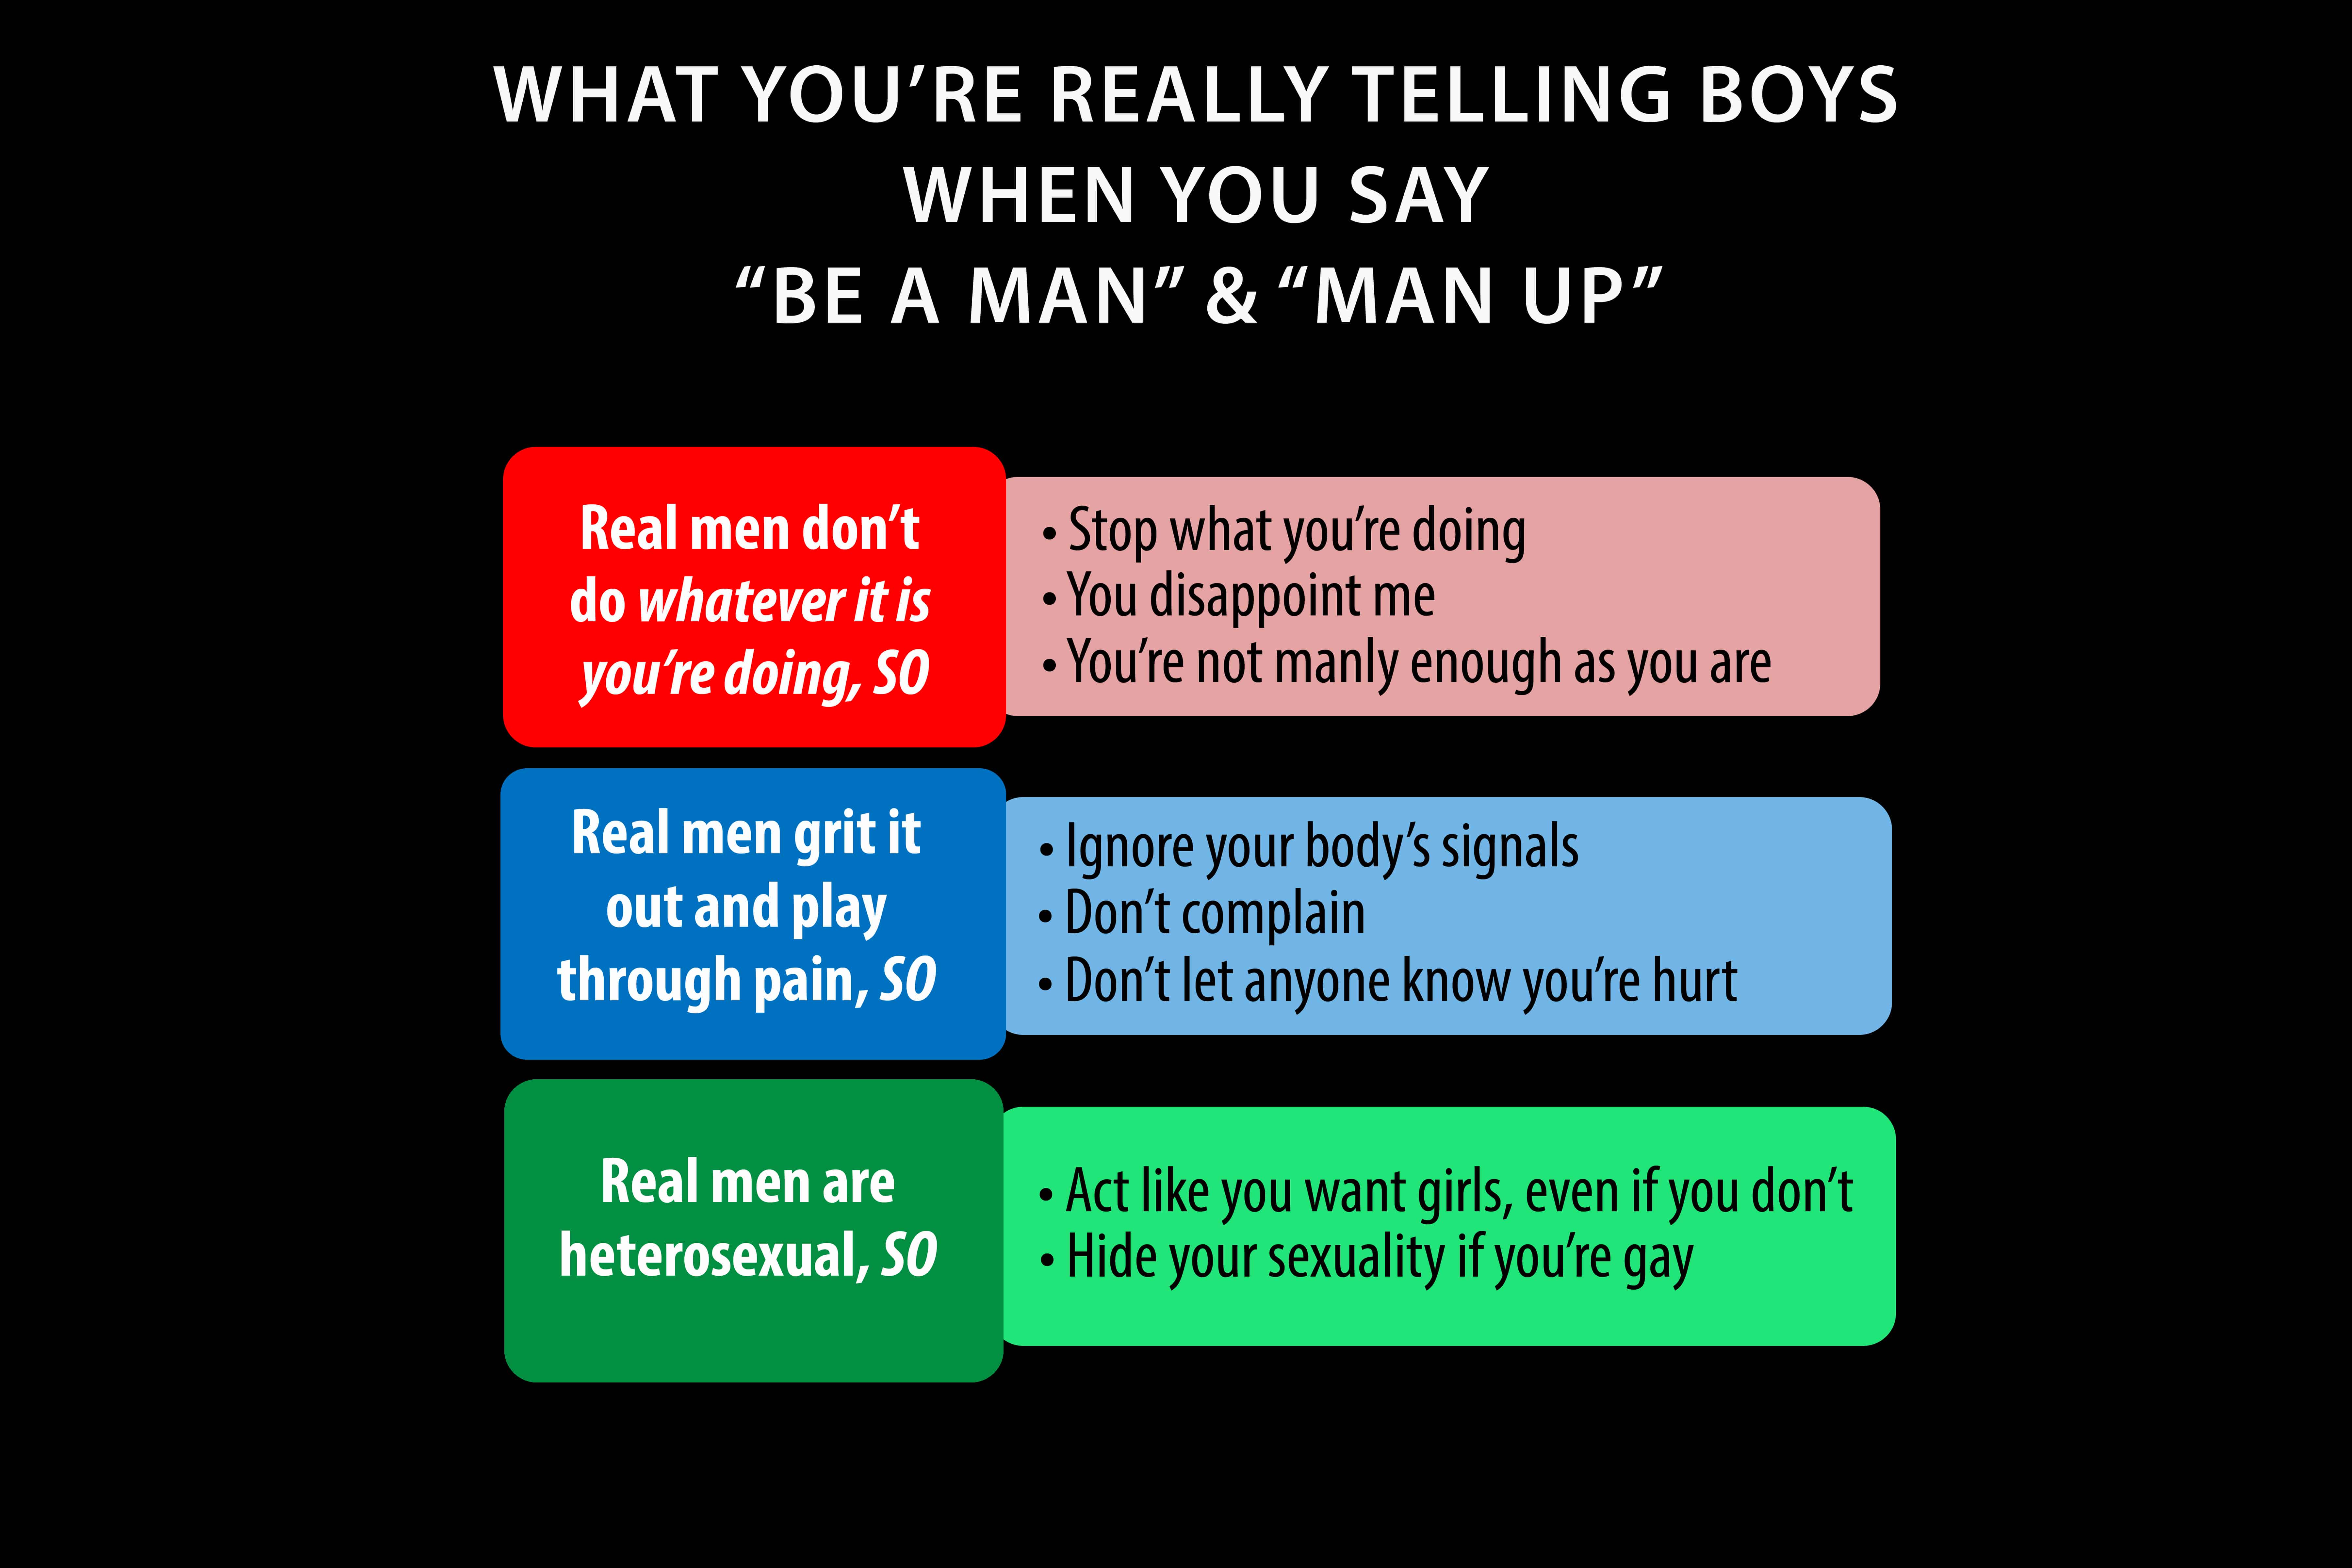 Building Boys WHAT YOU'RE REALLY TELLING BOYS poster.